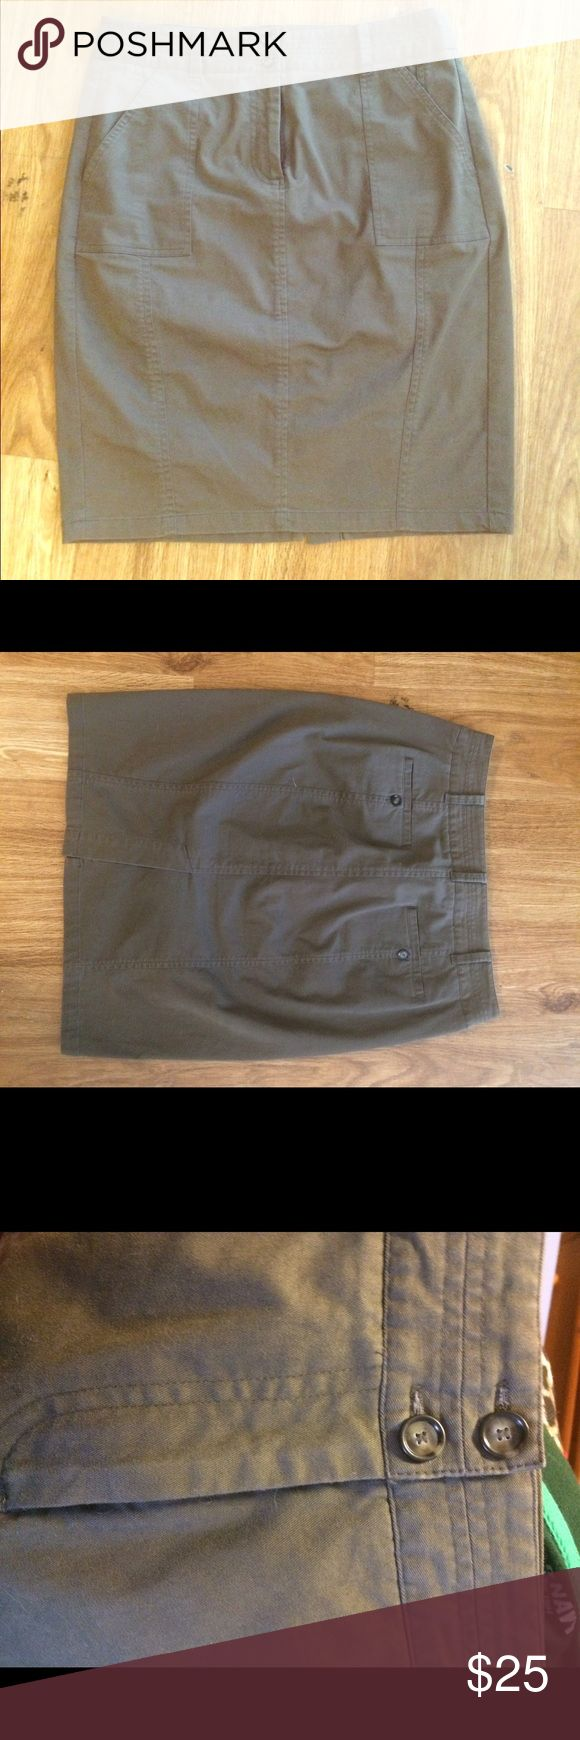 Banana republic khaki pencil skirt Hits just above the knee. Fastens with Hutton and fly. Definitely has stretch and a nice, thick material. Measurements taken flat. Waist: 16 Hip: 21 Length: 22 Banana Republic Skirts Pencil